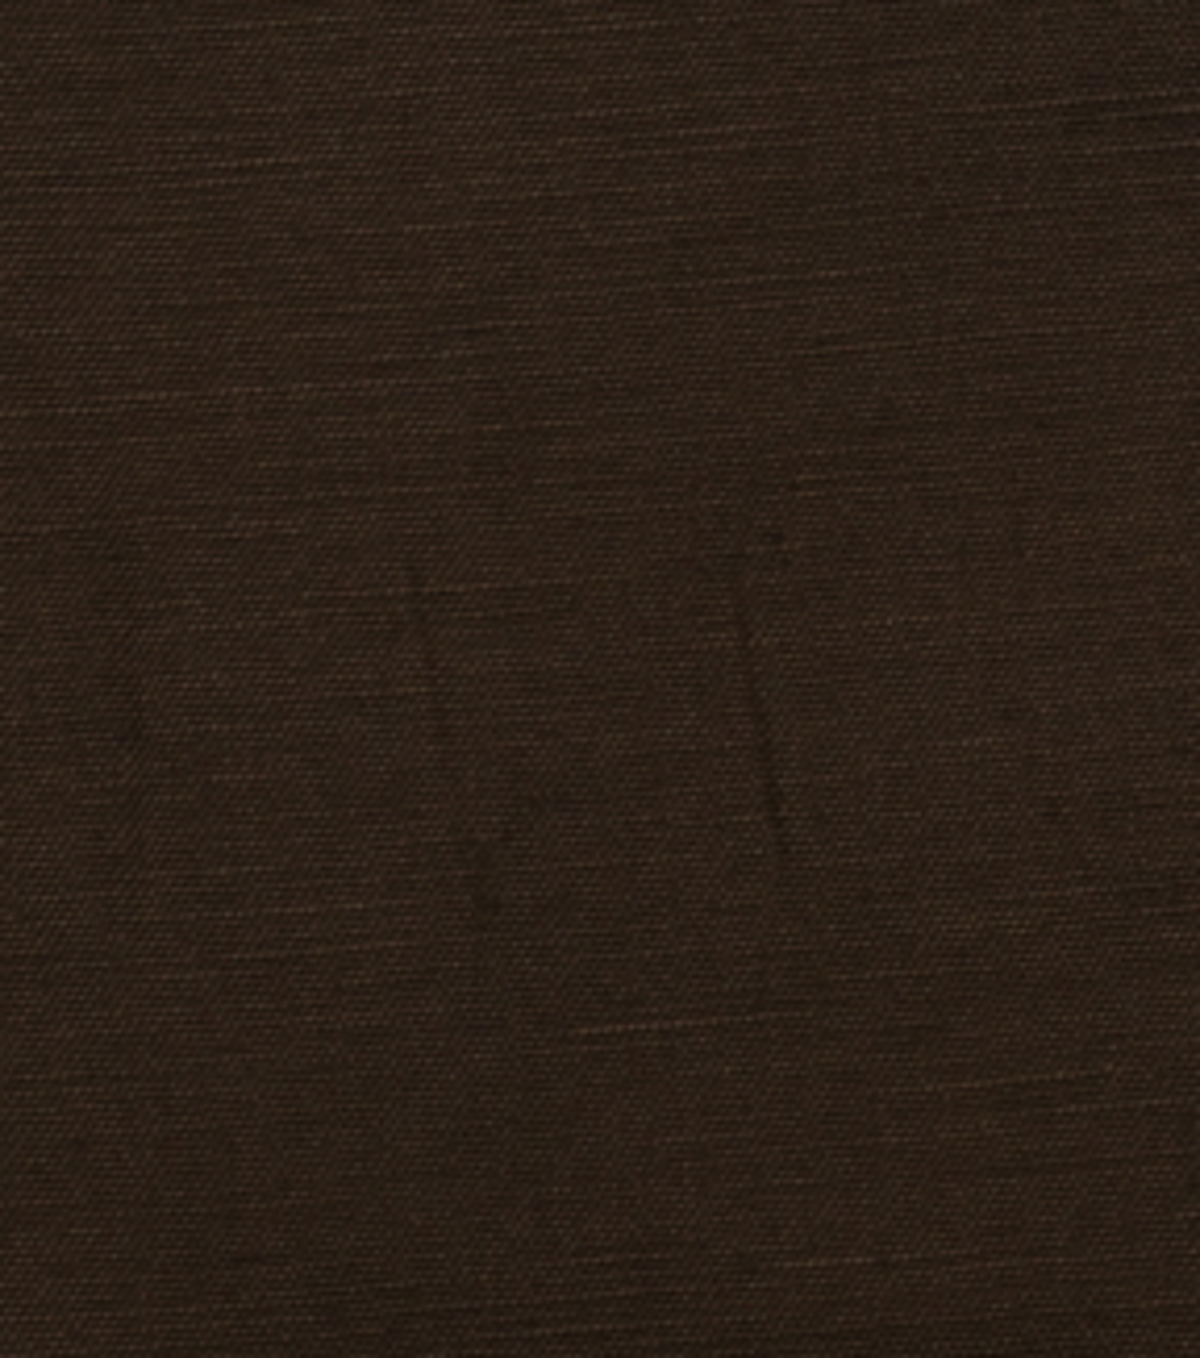 Home Decor 8\u0022x8\u0022 Fabric Swatch-Signature Series Sonoma Linen-Cotton Bark